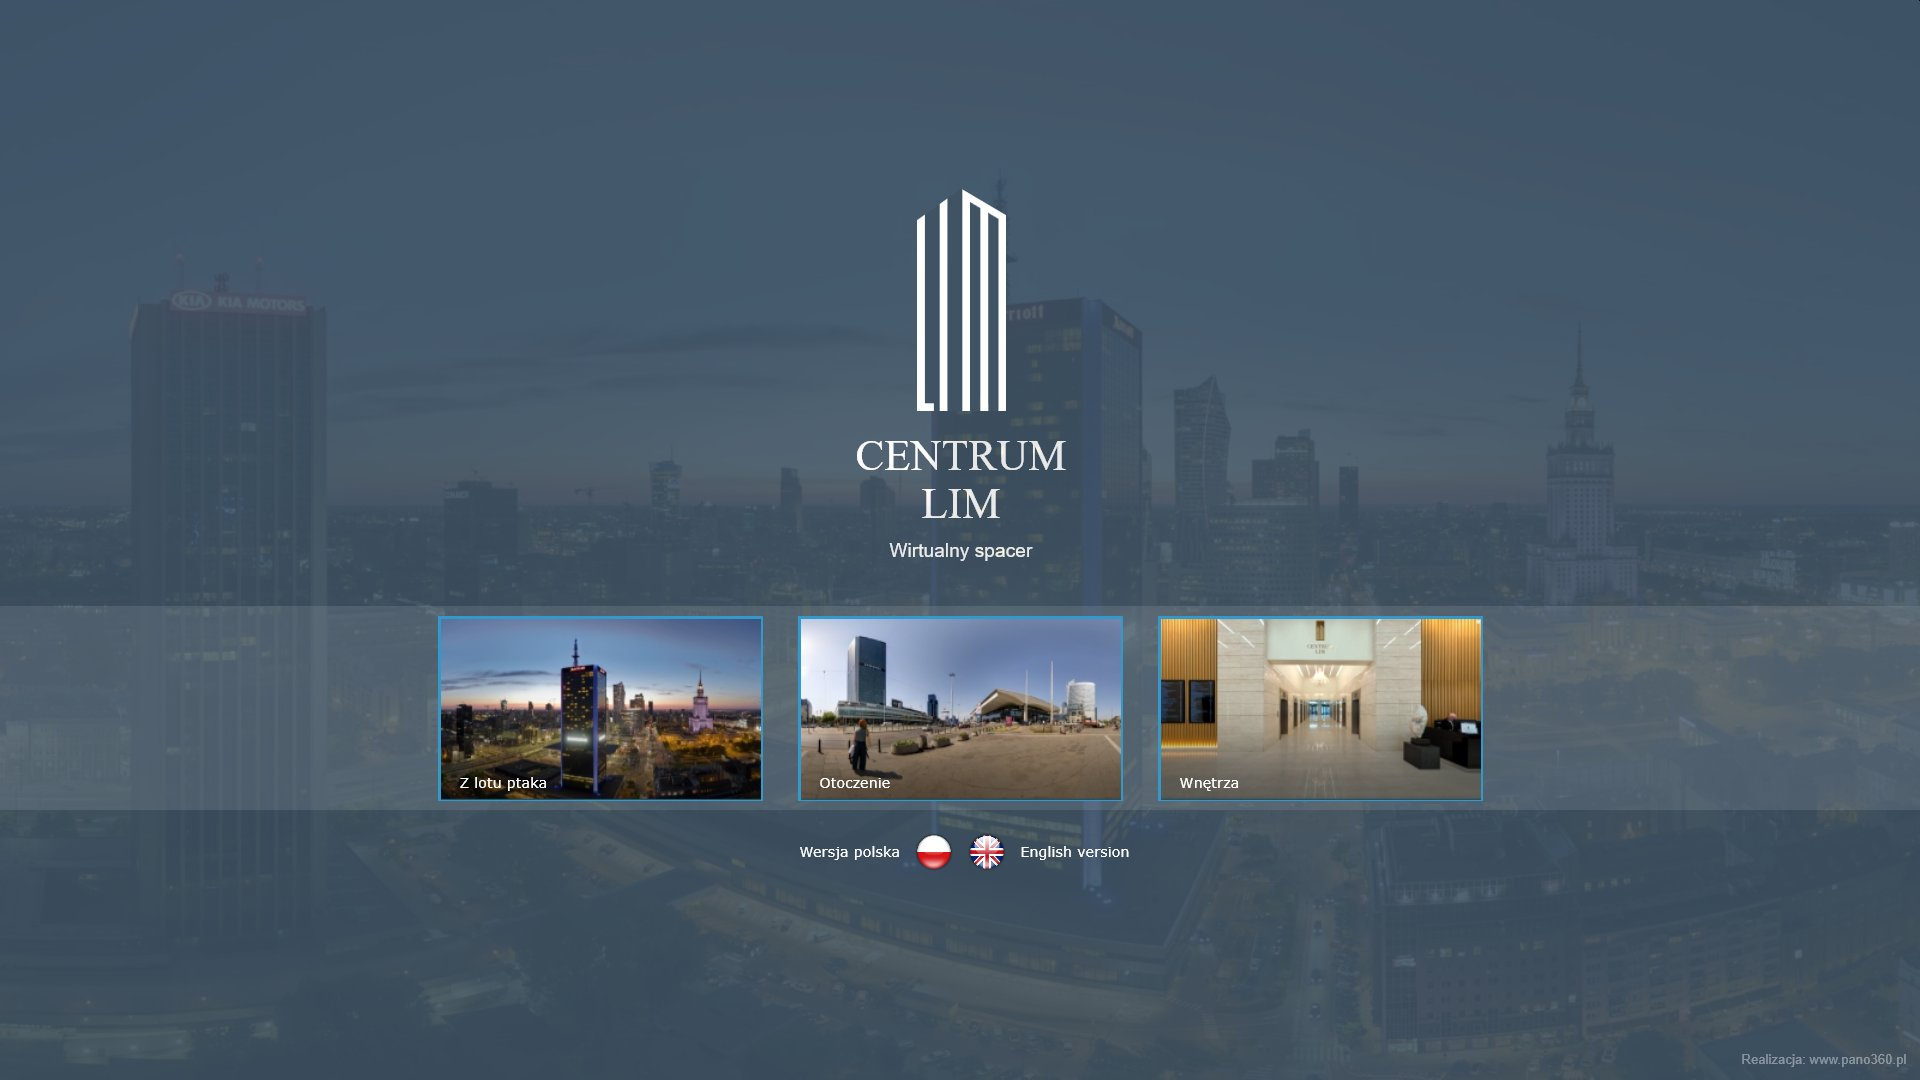 Centrum LIM - Hotel Marriott